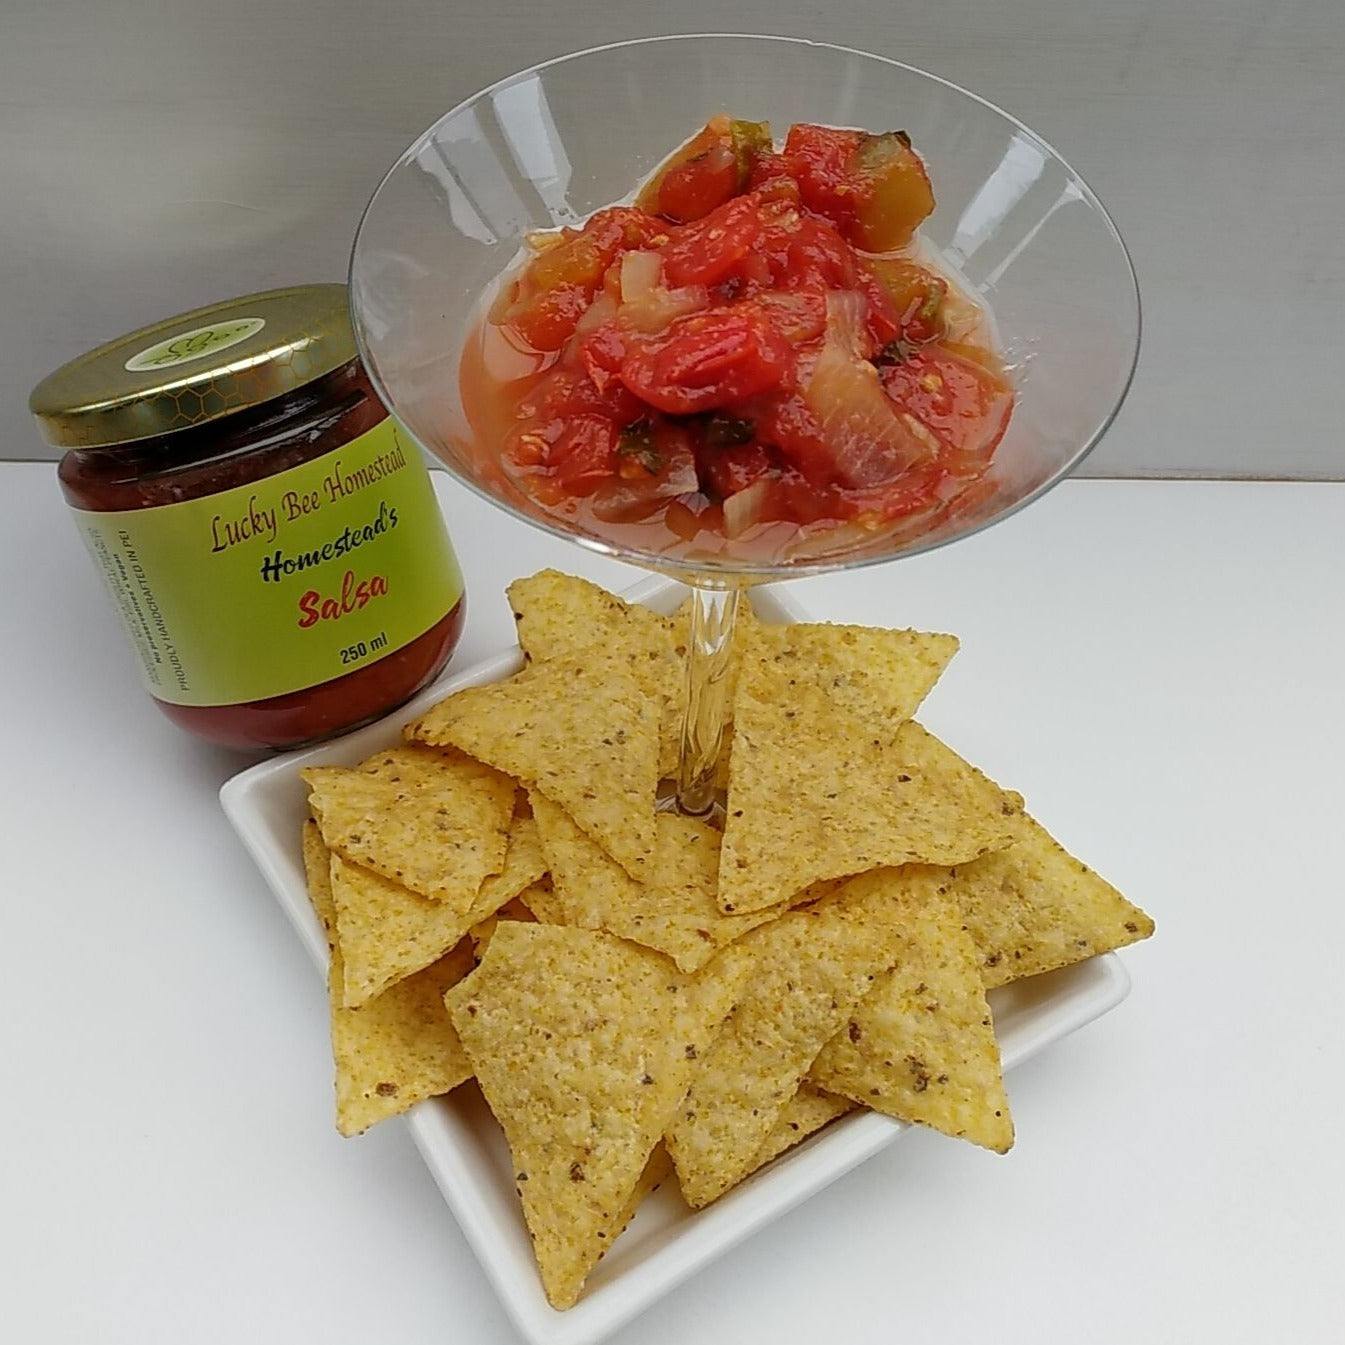 A cocktail glass with salsa, chips around it and a jar of salsa